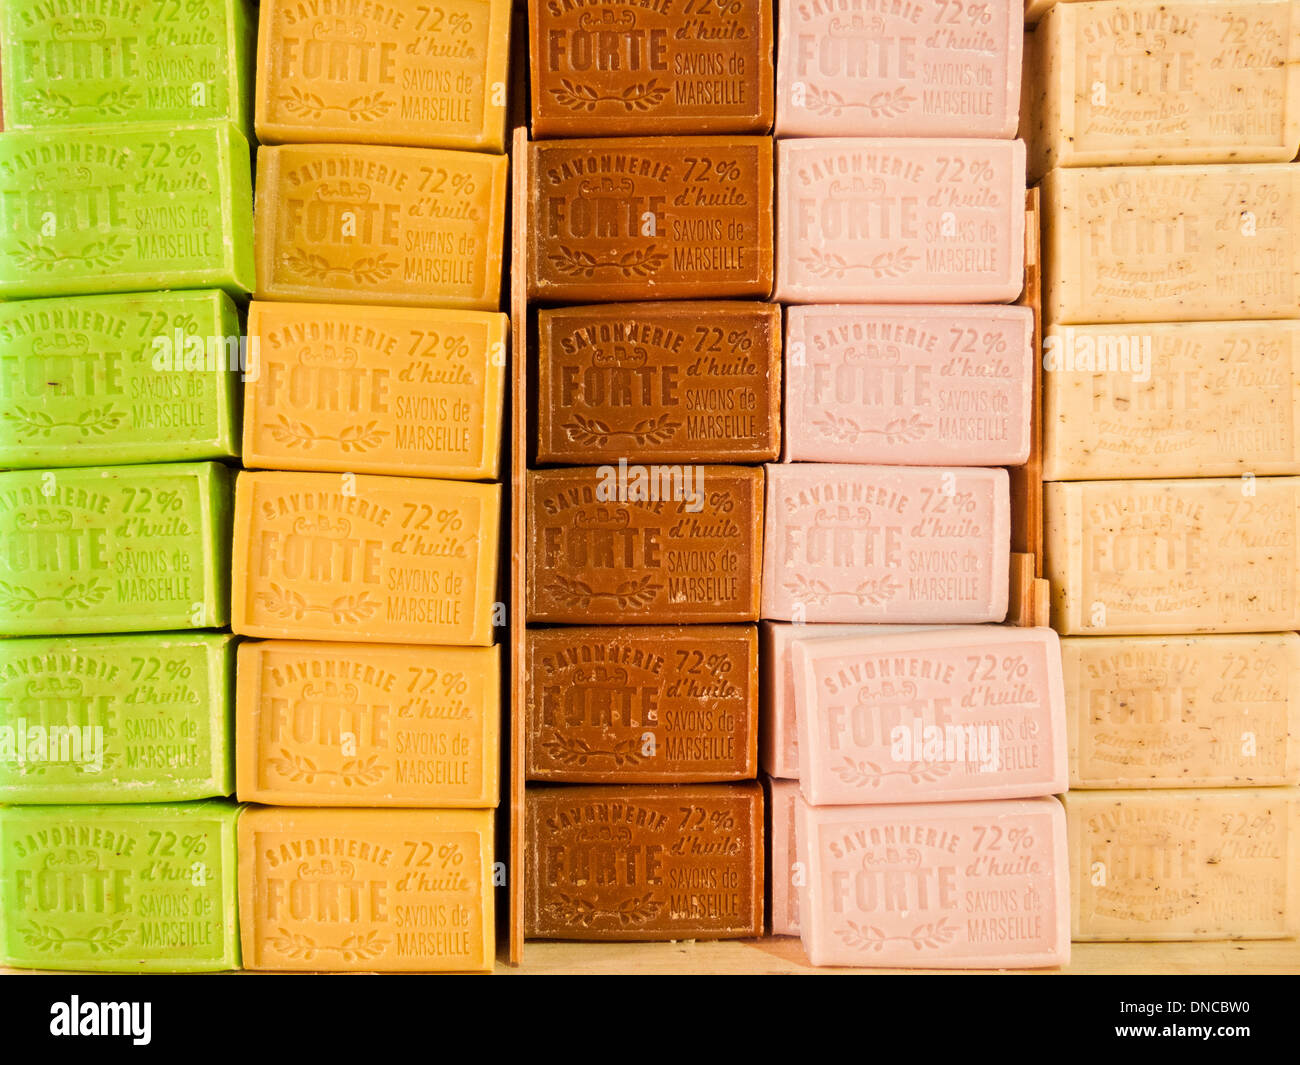 Traditional artisan soap bars,Marseilles,France - Stock Image